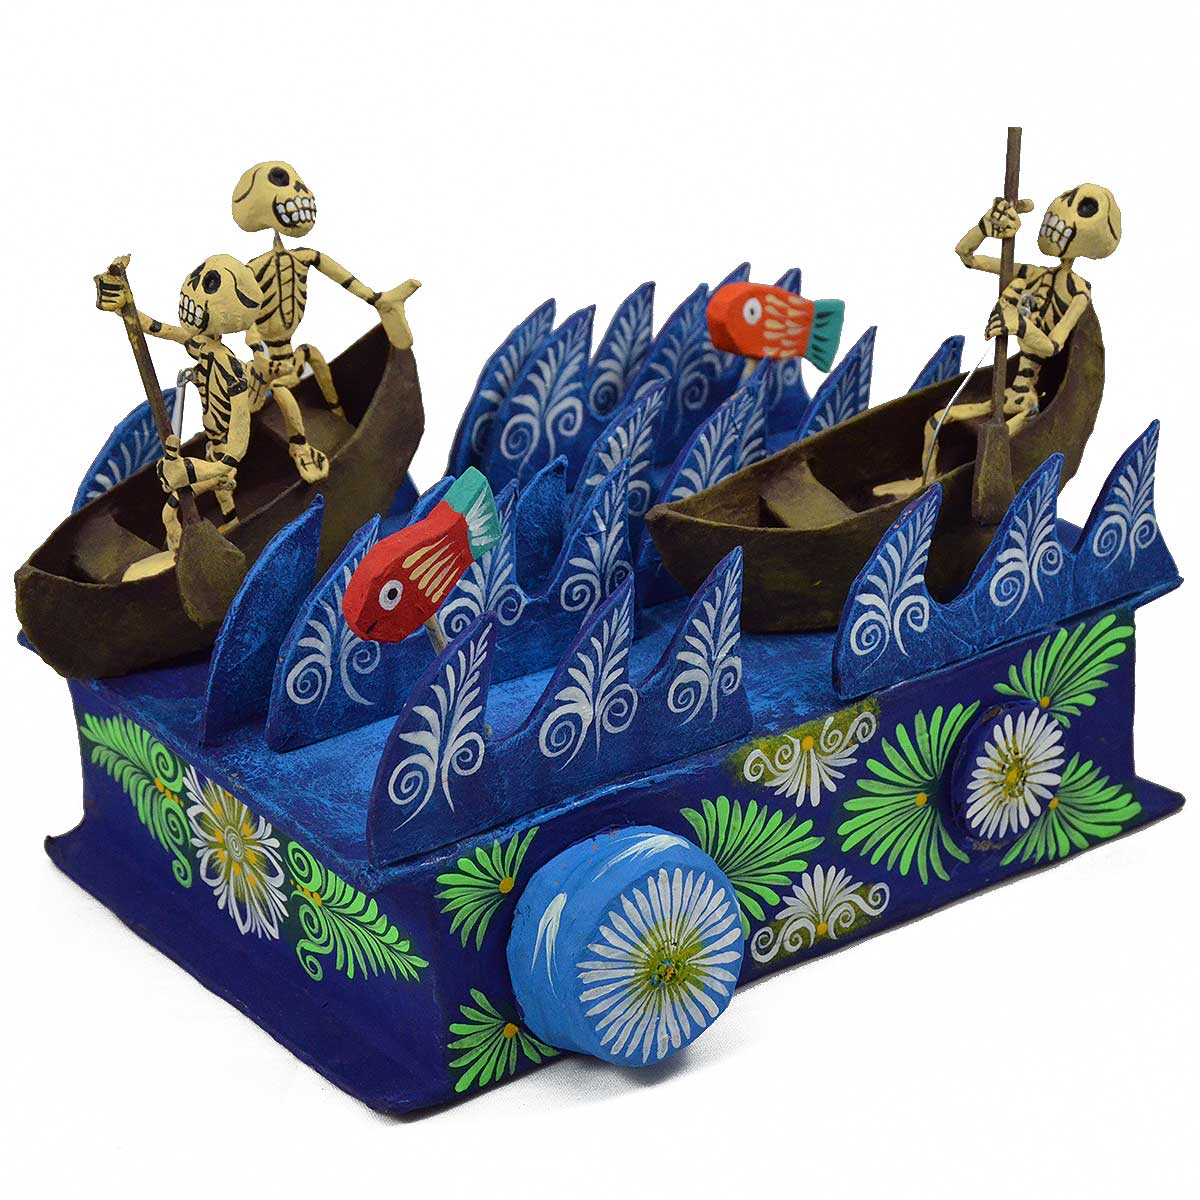 Mechanical Folk Art Josue Eleazar Castro: Award Winning Replica – Large Rowing Skeletons cartoneria